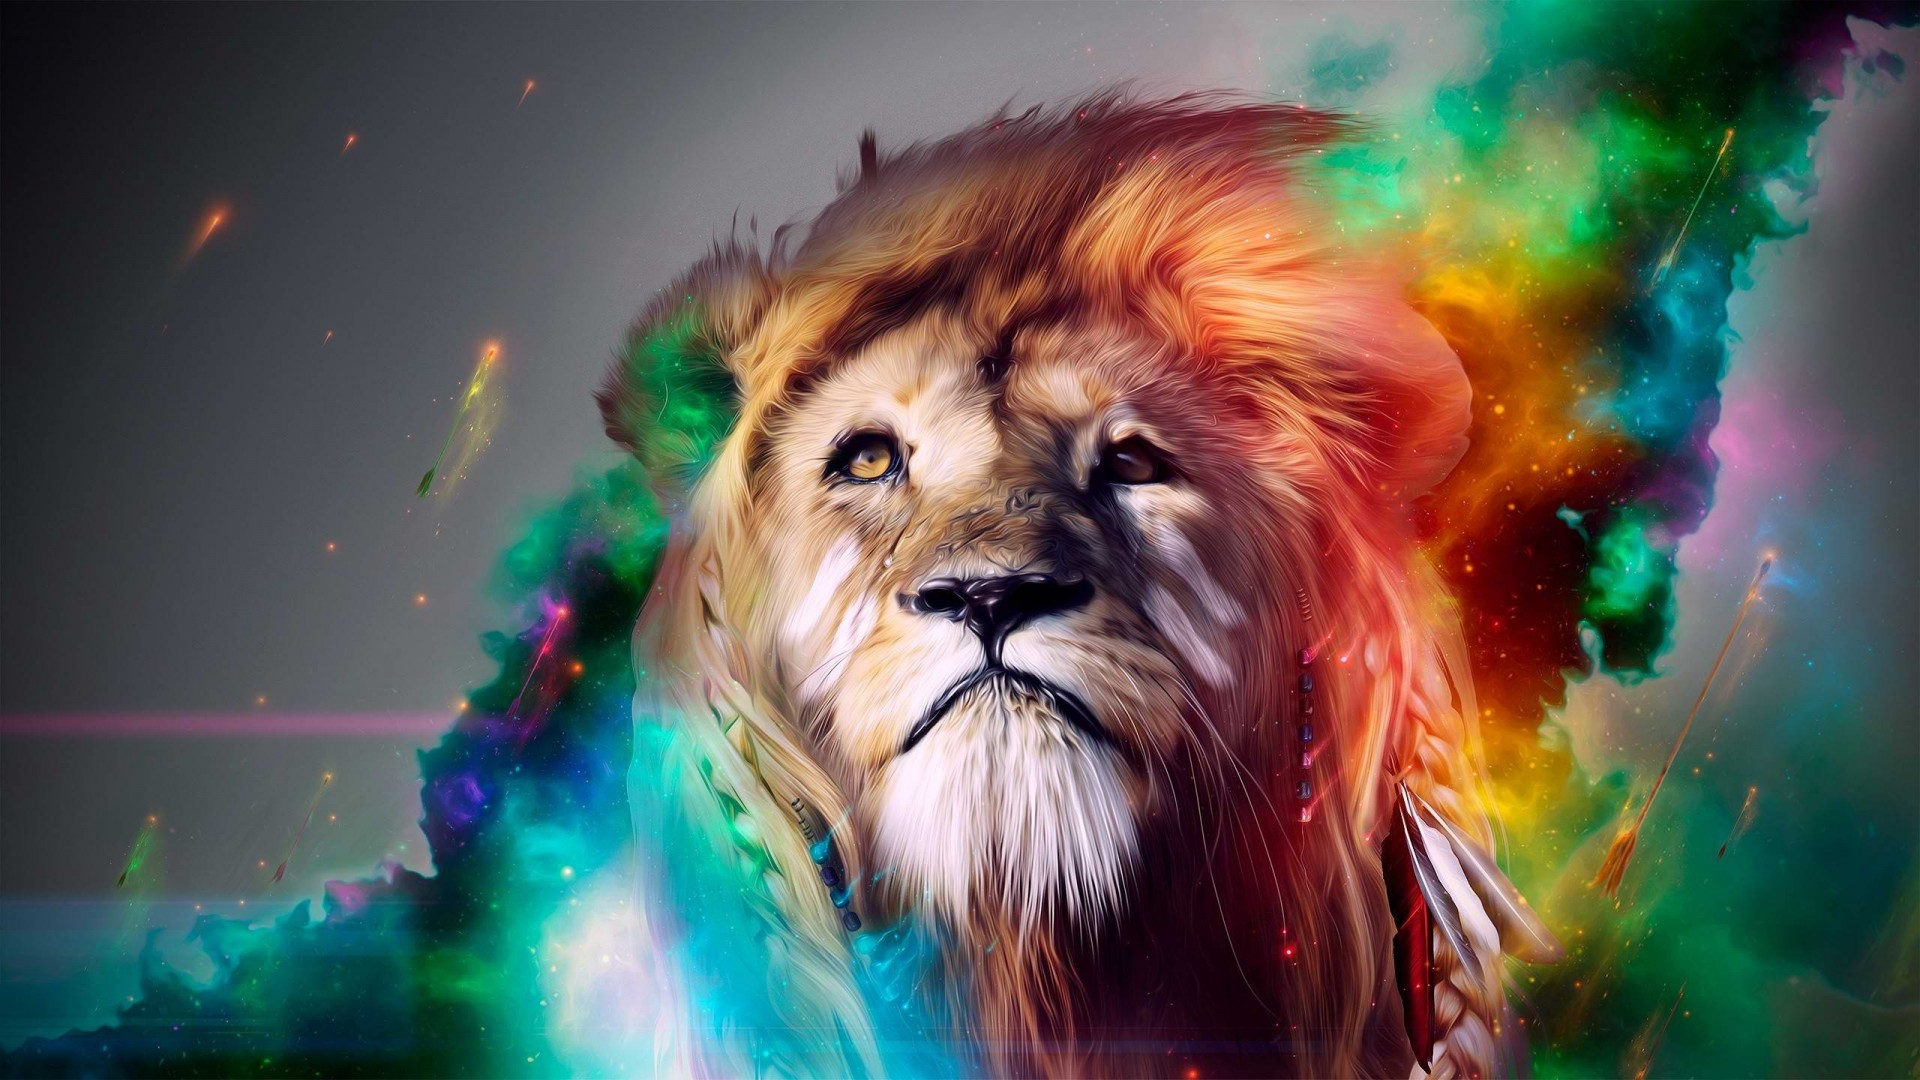 Lion Look Colorful Wallpapers